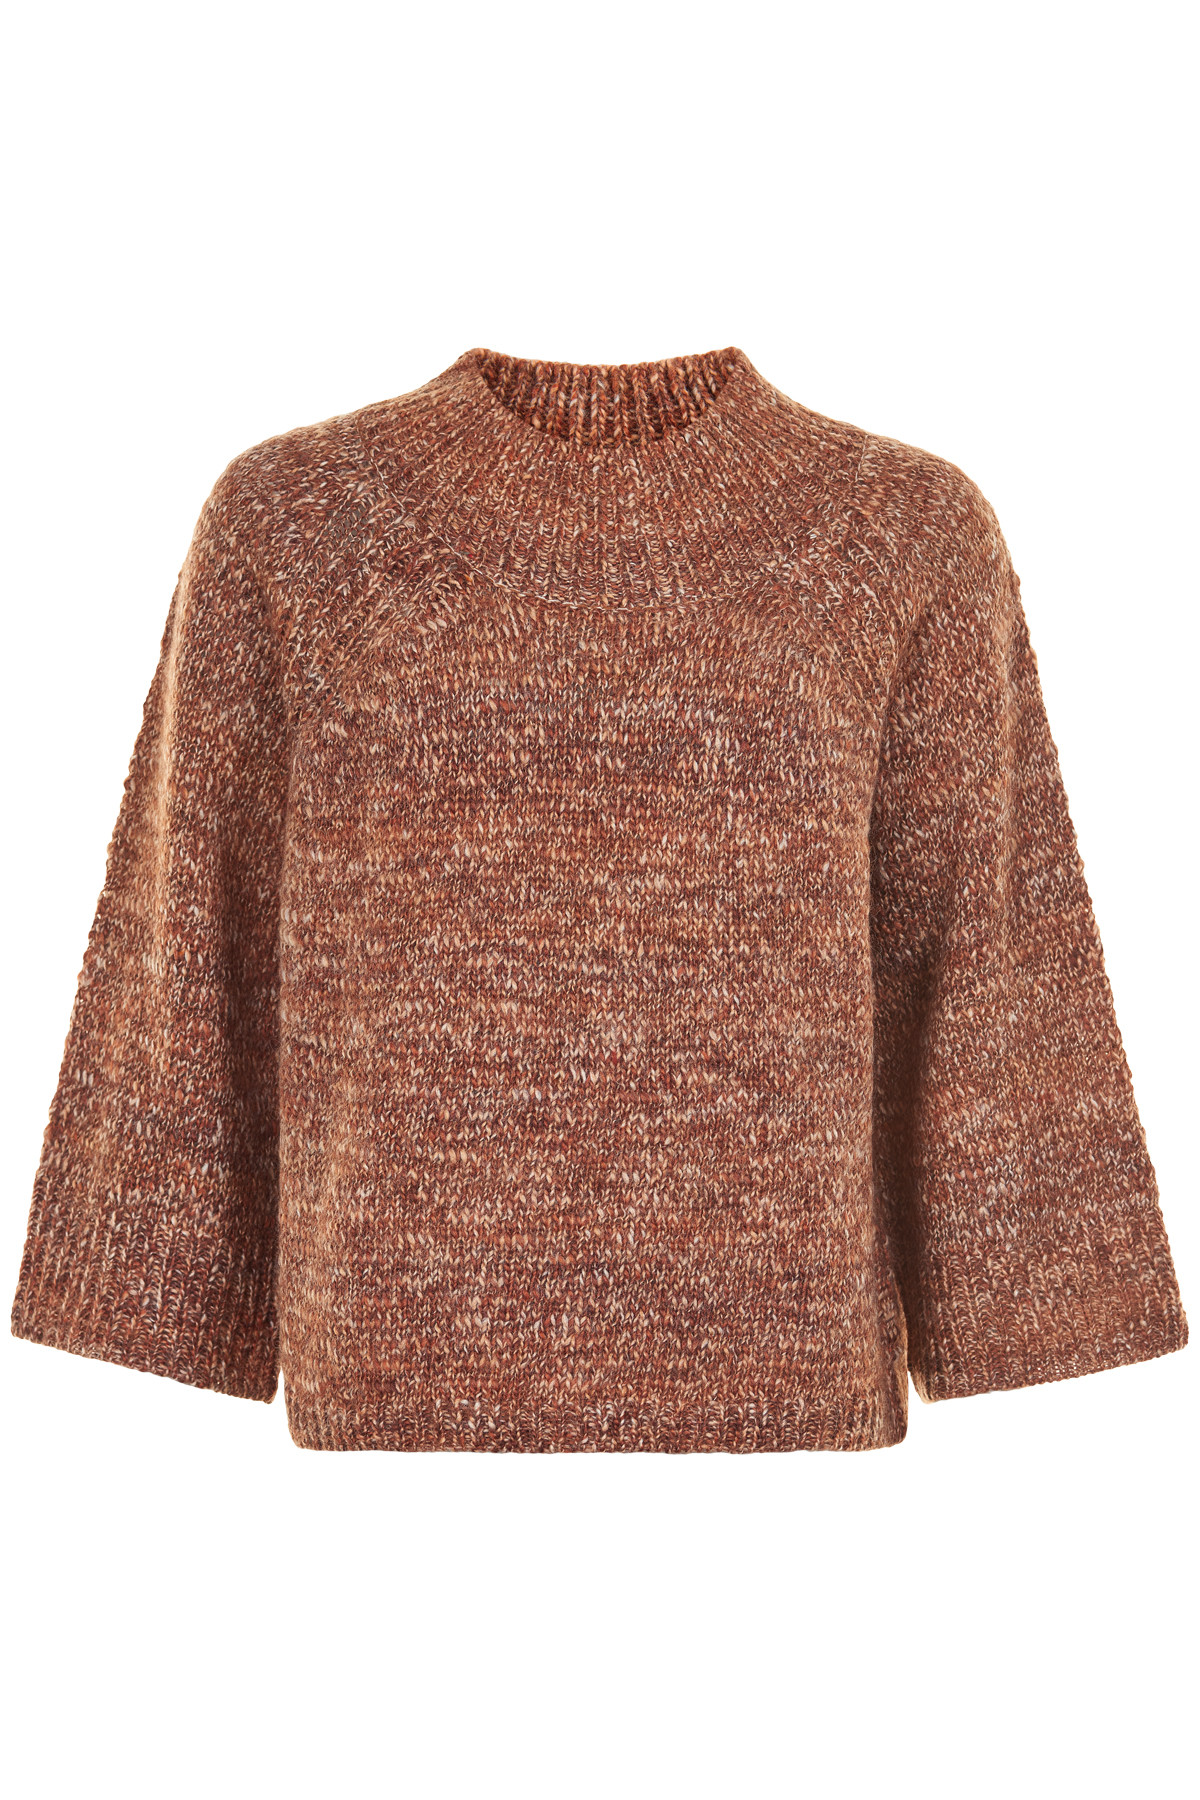 Image of   AND LESS ALHASTI PULLOVER 5519201 (Rawhide, M)